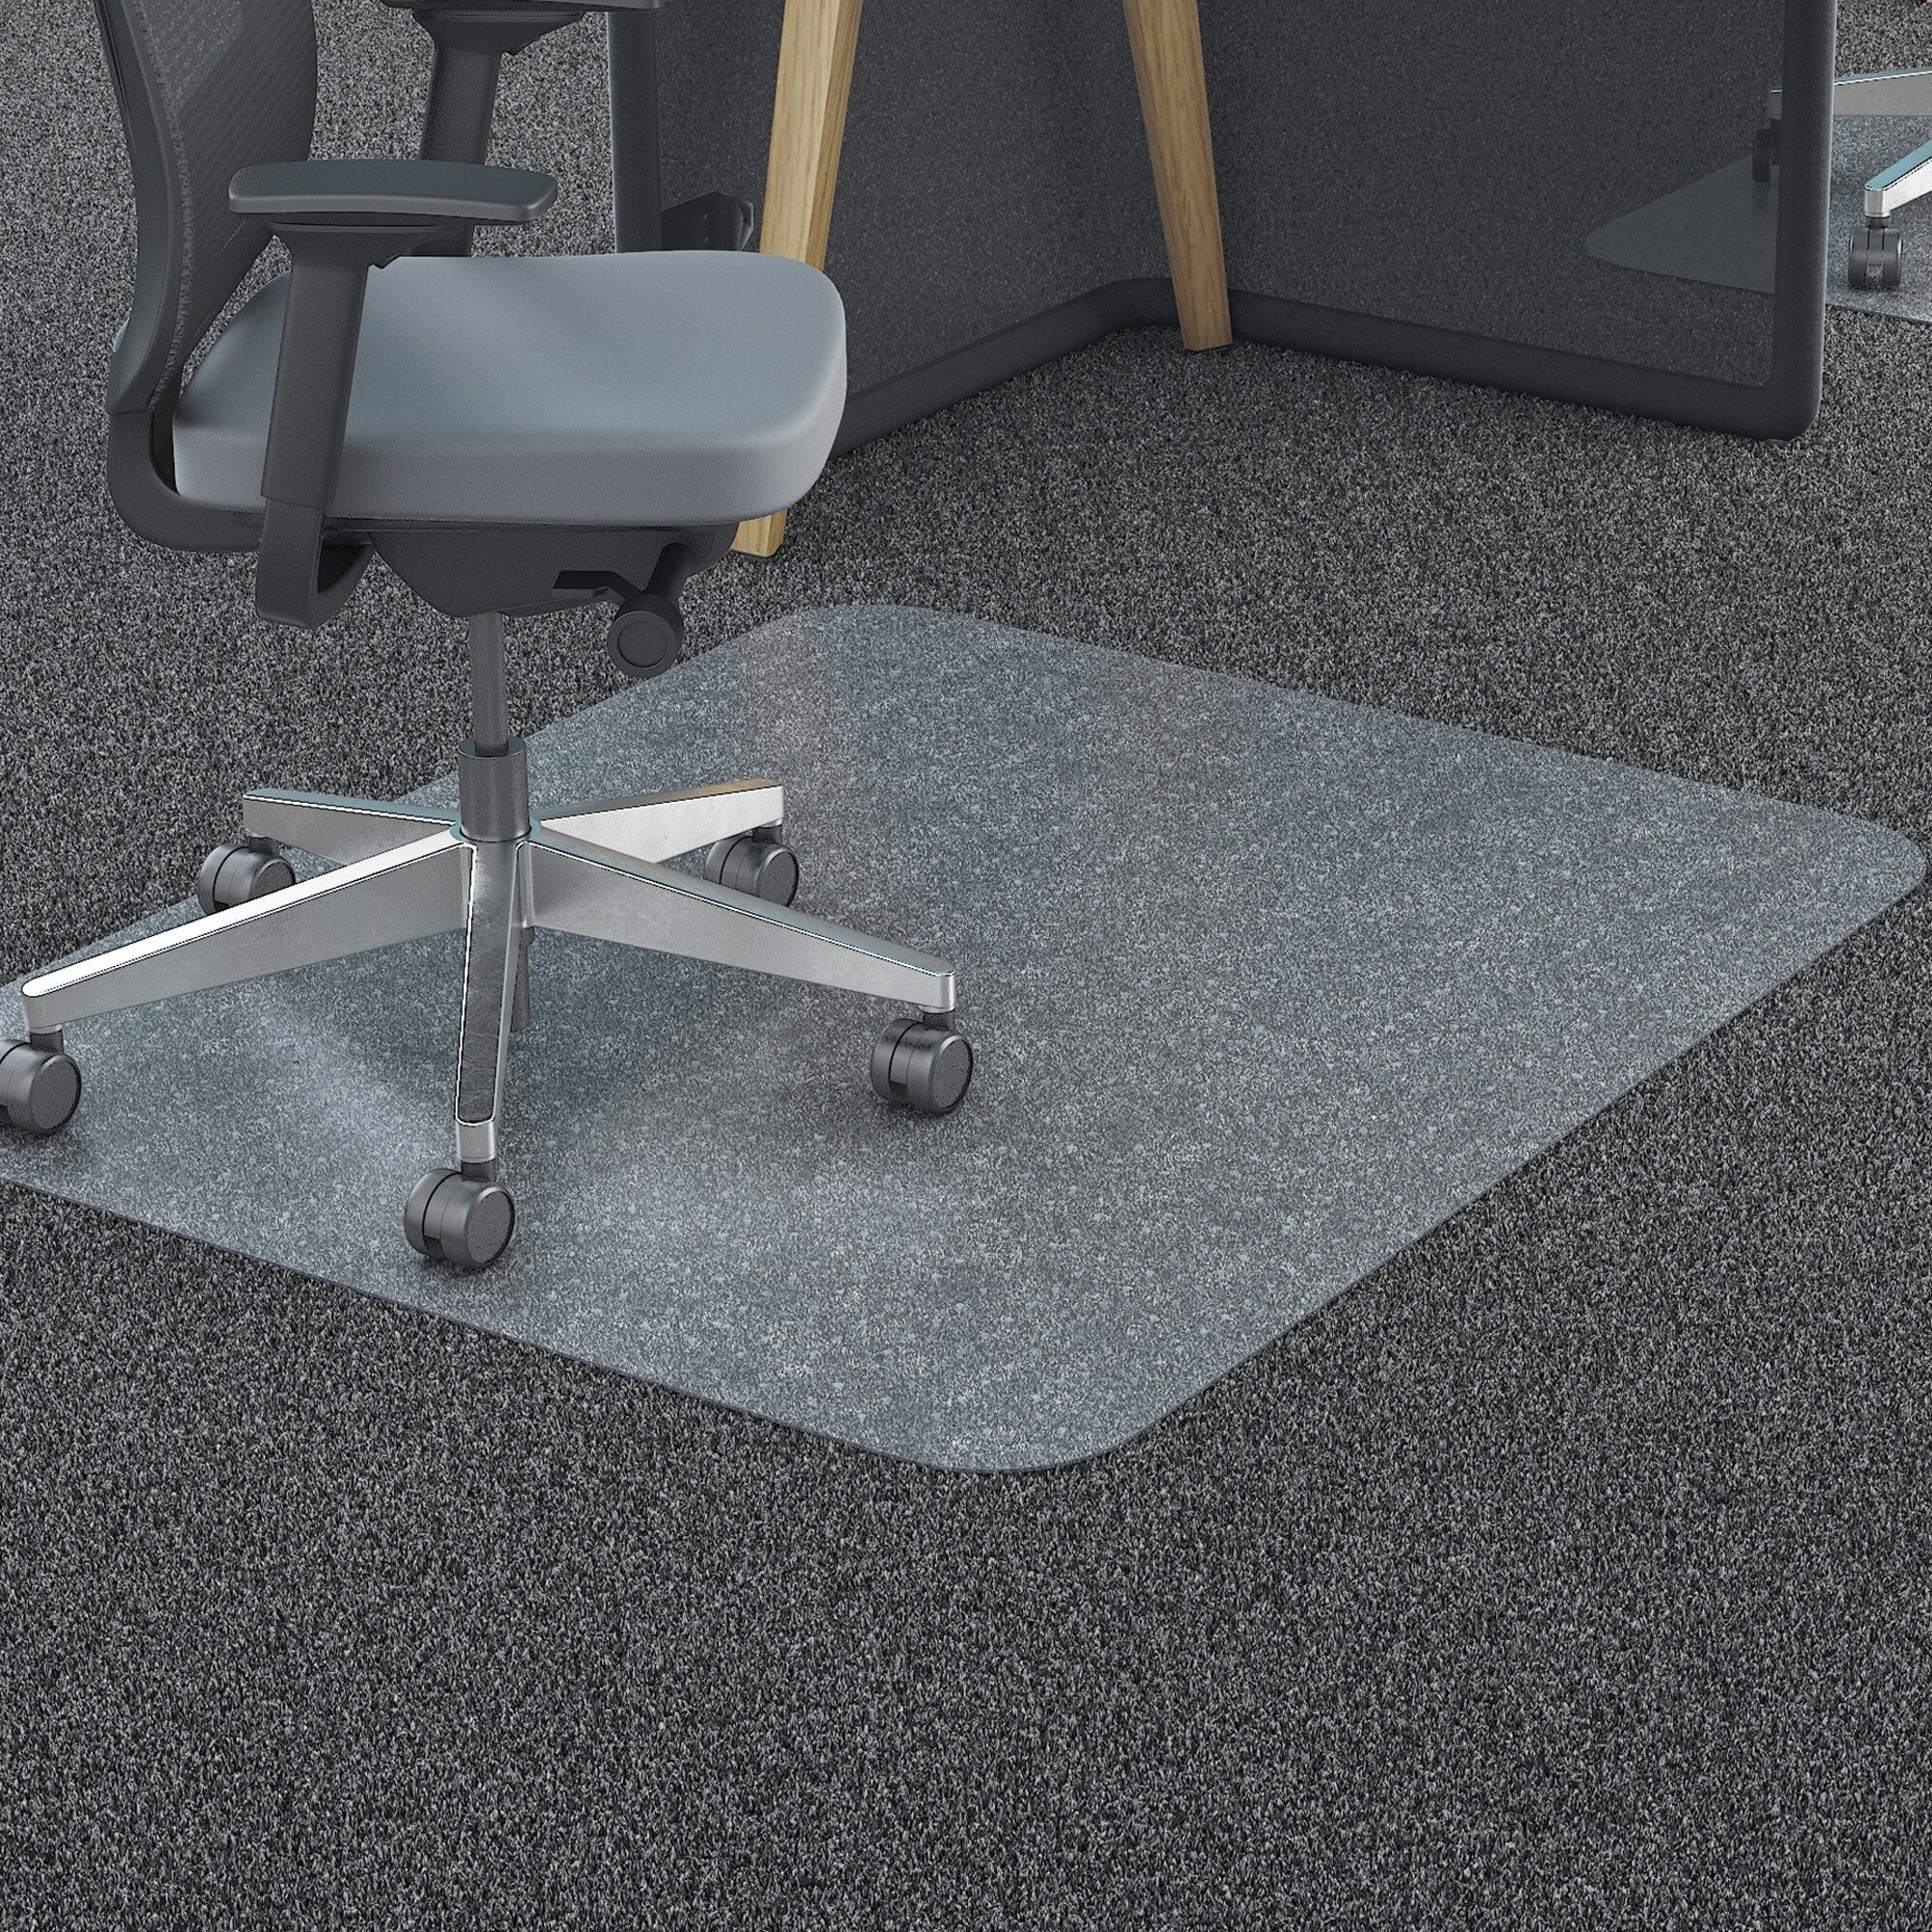 36 X 46 Clearly Innovative Lifetime Gl Chairmat With Patented Beveled Edges